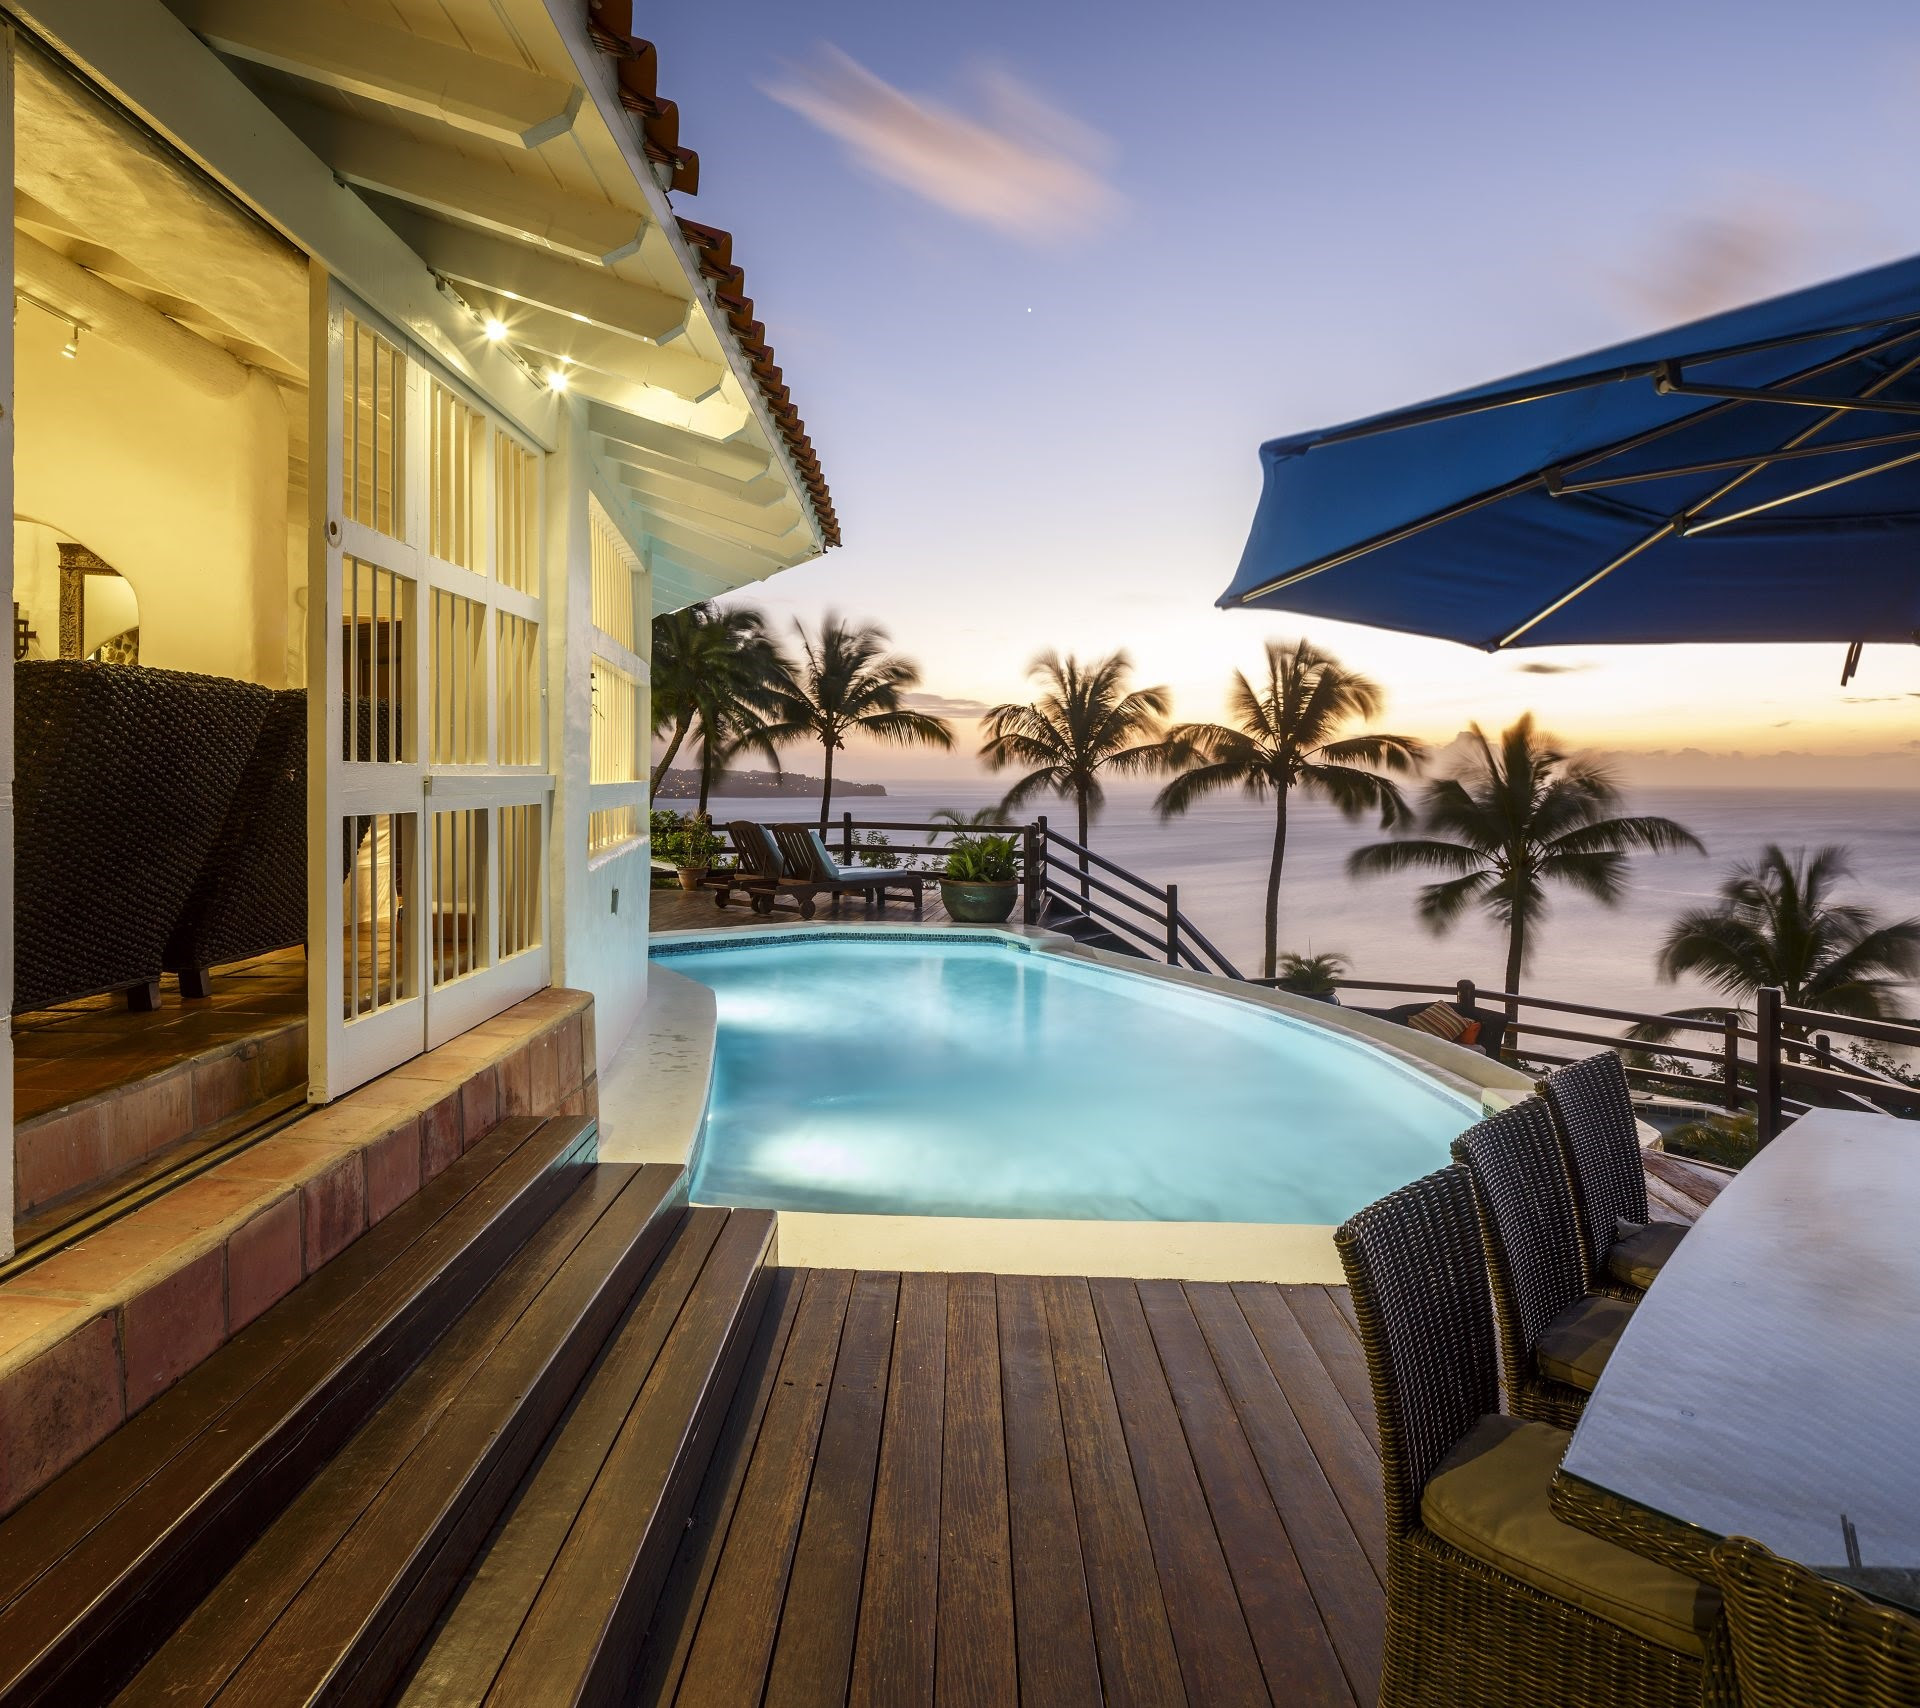 St Lucia Honeymoon Resorts with Private Pool Suites  All